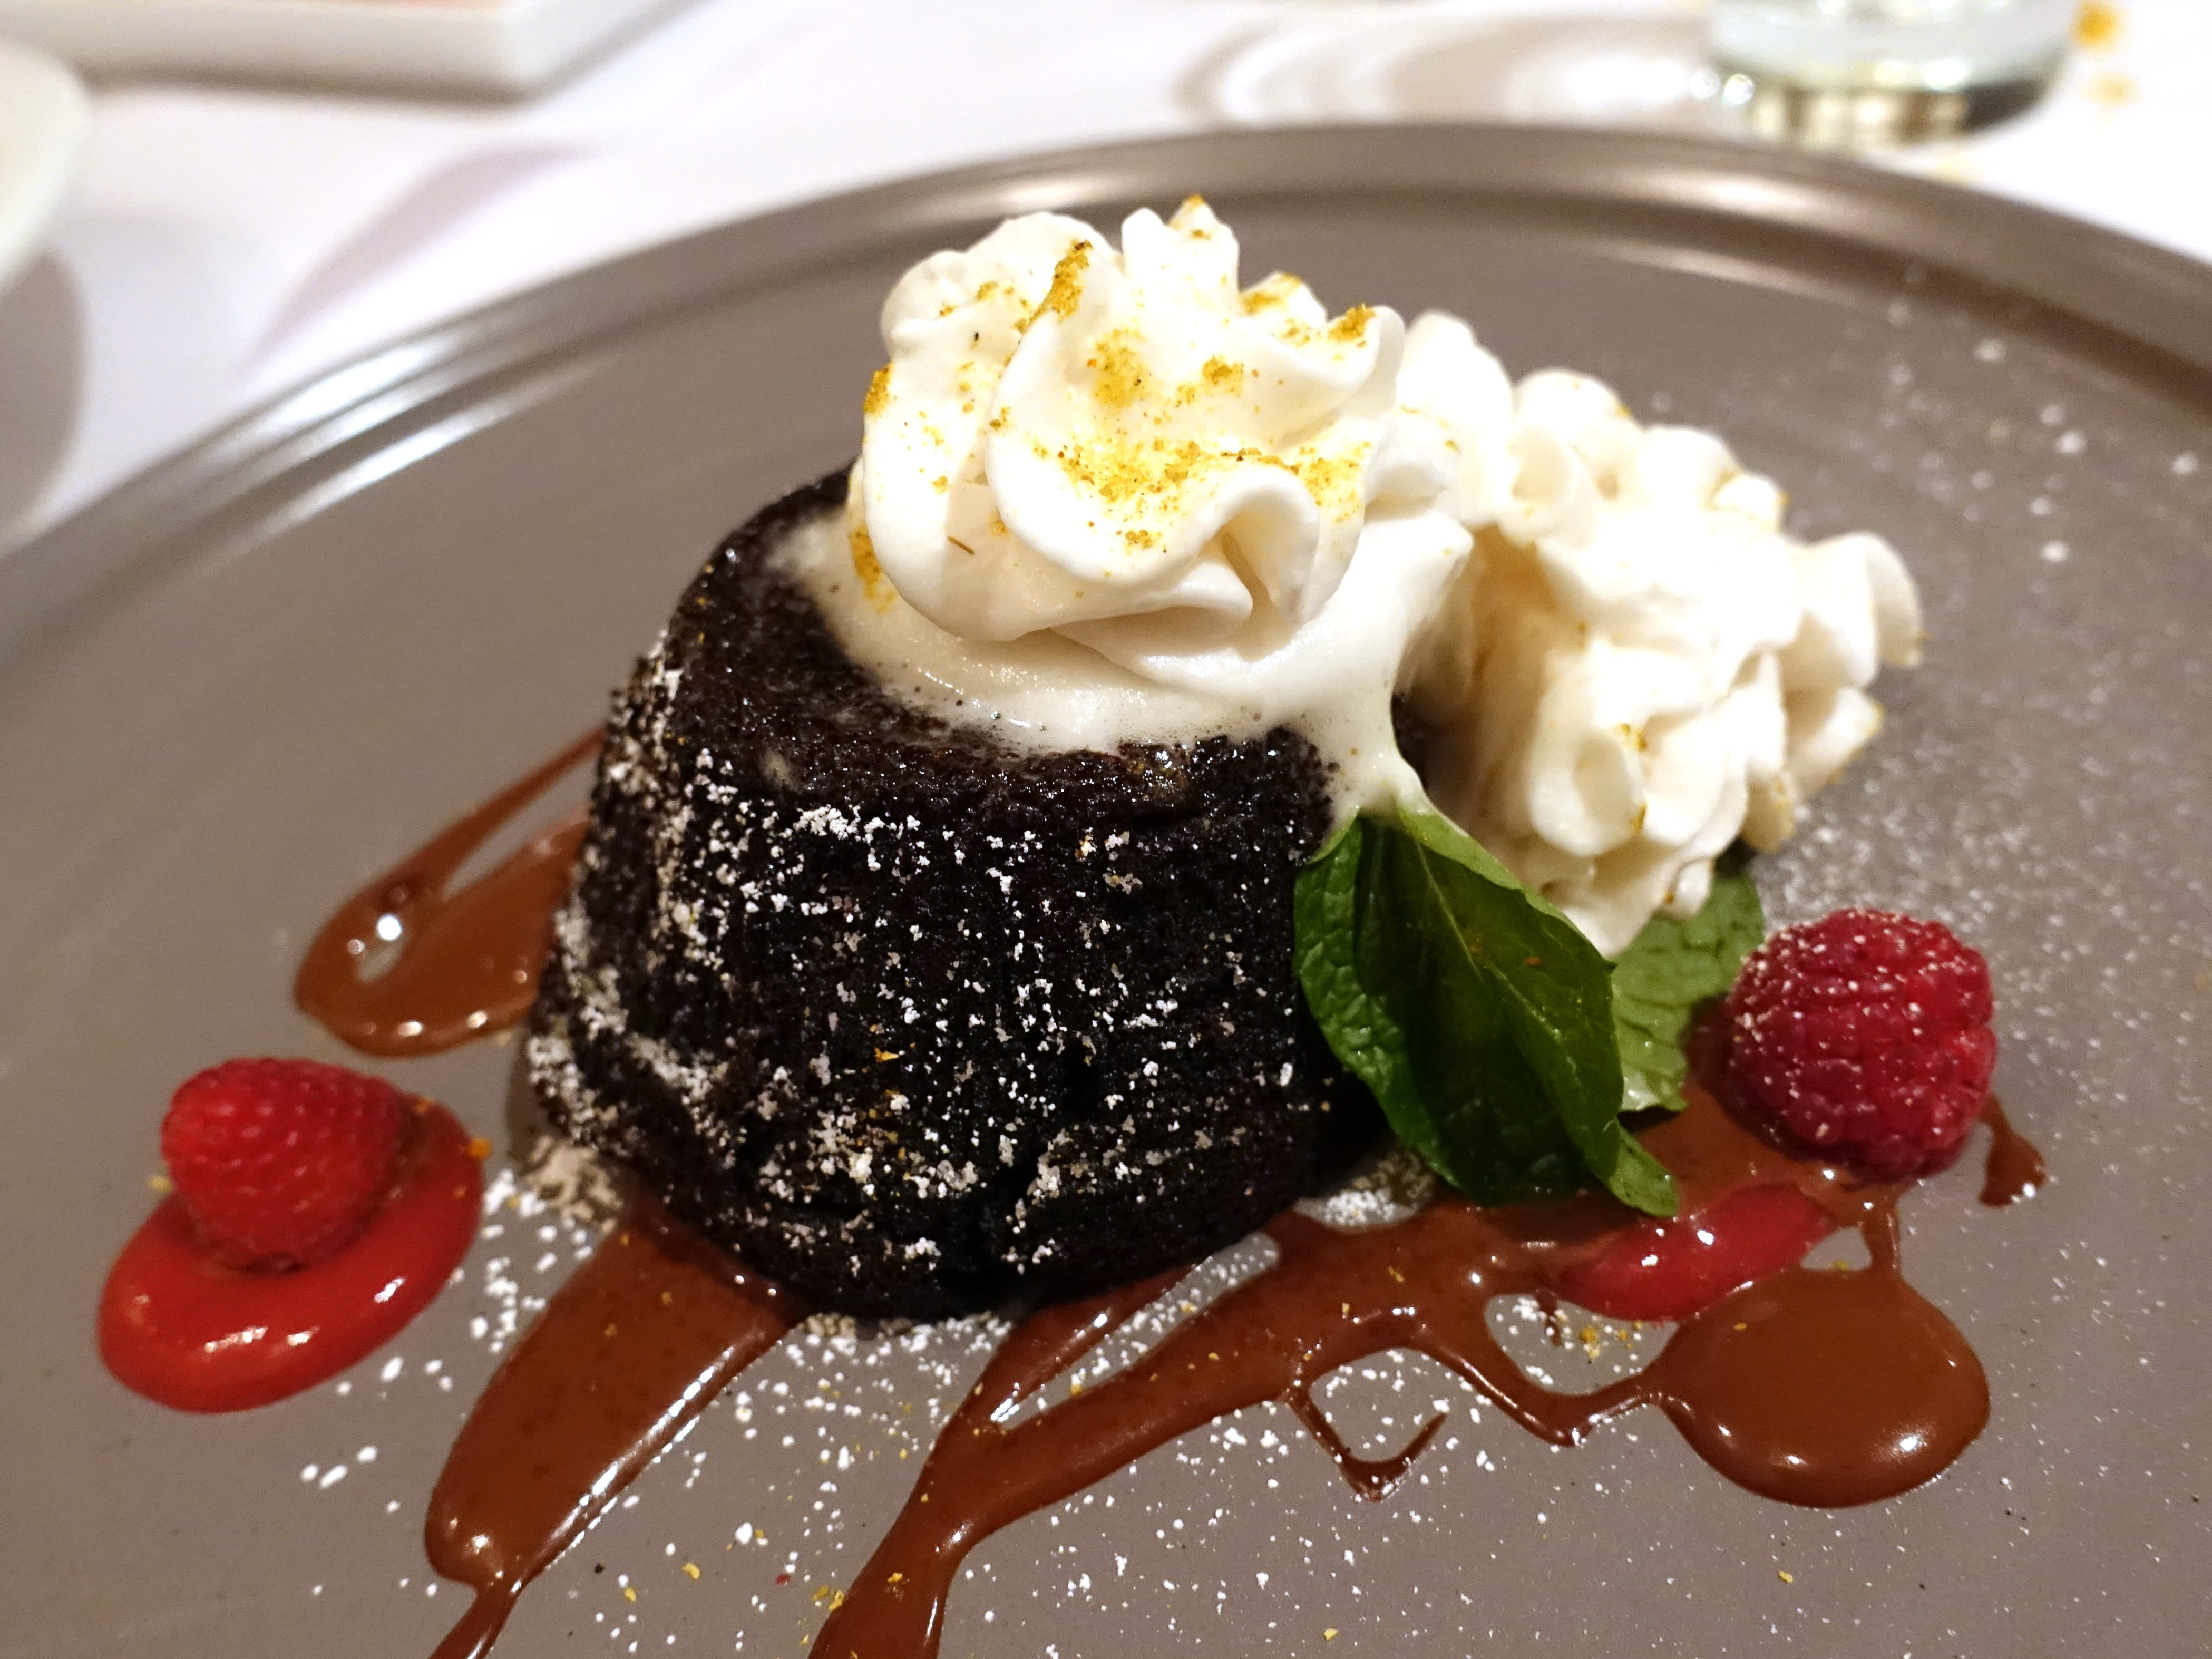 Chocolate torte with chocolate sauce, spiked cream and raspberry coulis at Casa Terra in Glendale.